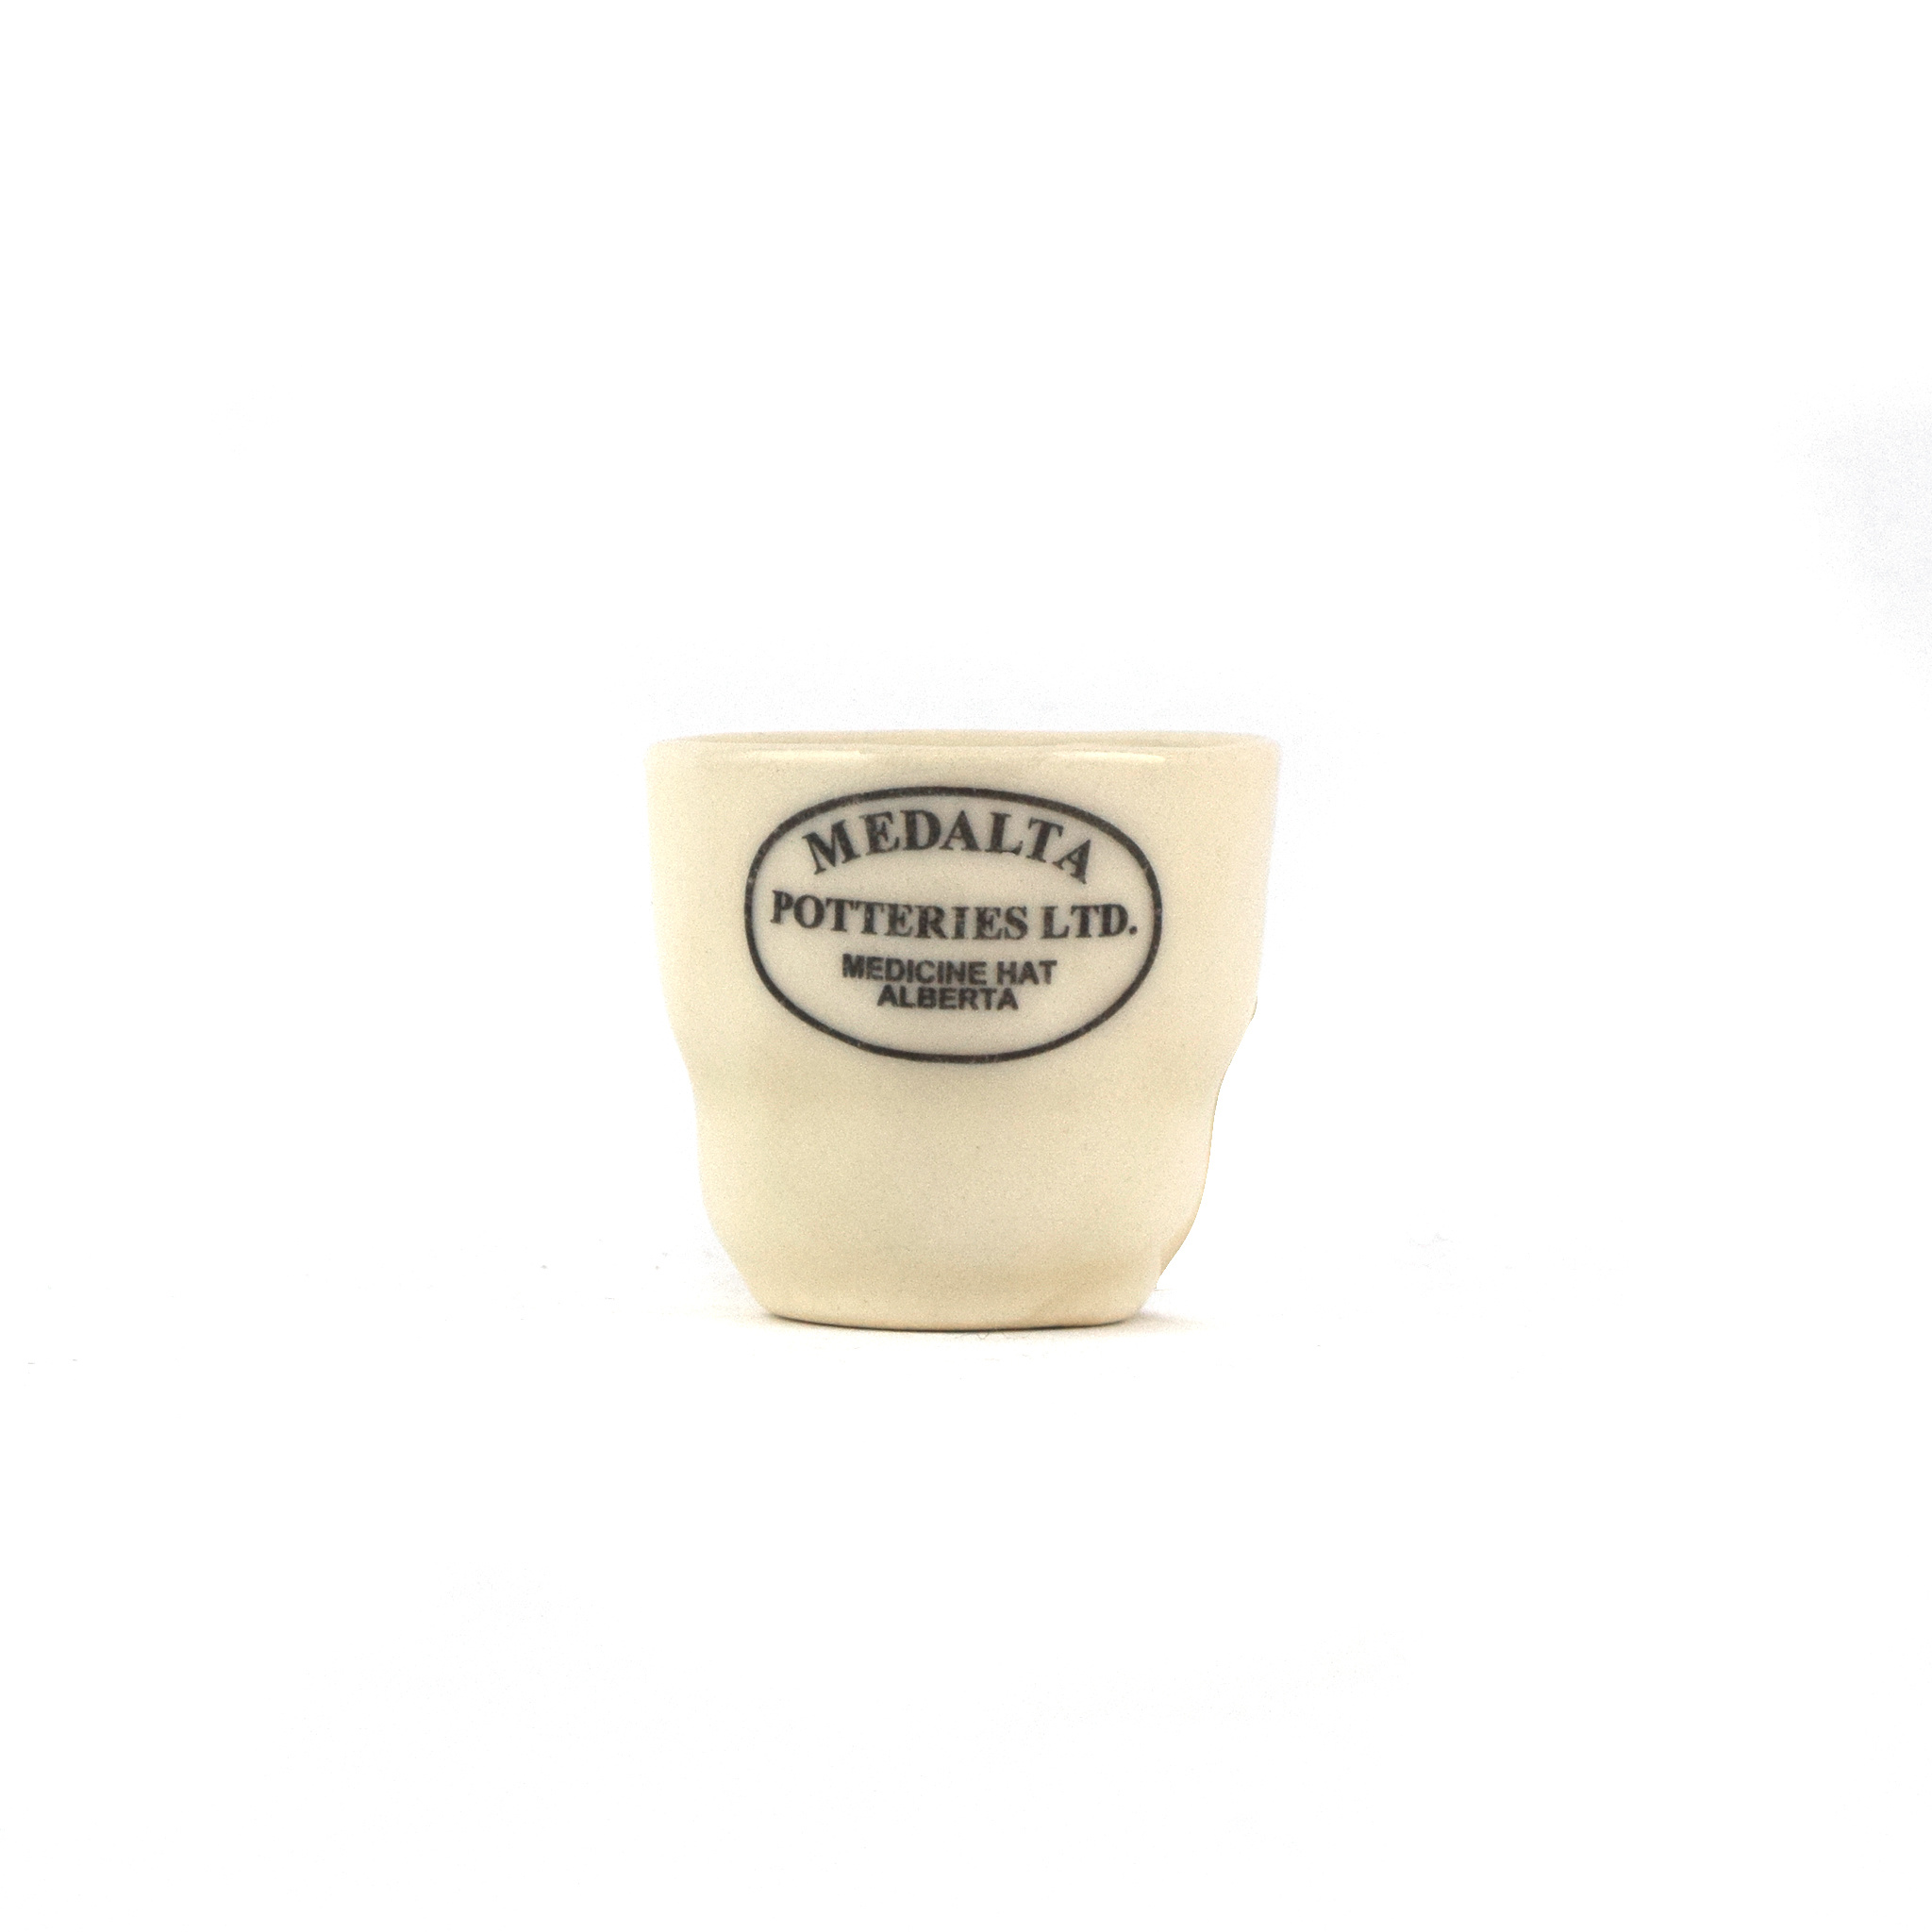 Medalta Ware Reproduction Egg Cup